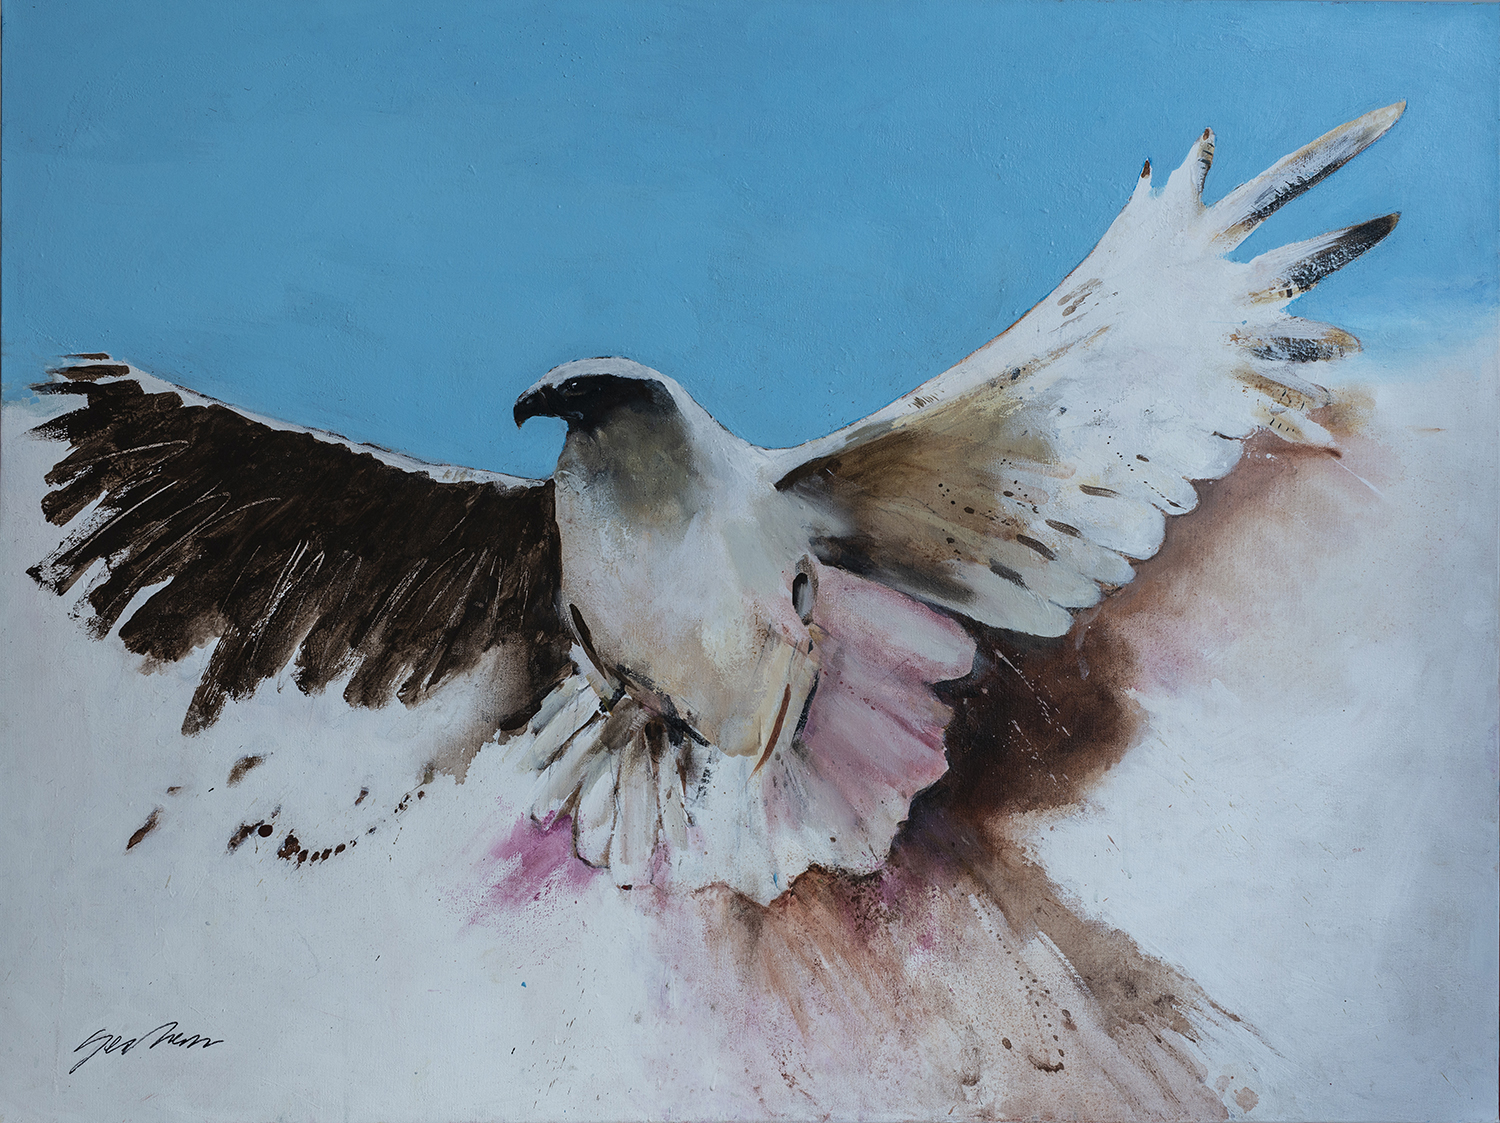 Painting of a white and black bird with pink-tipped feathers against a blue and white background.